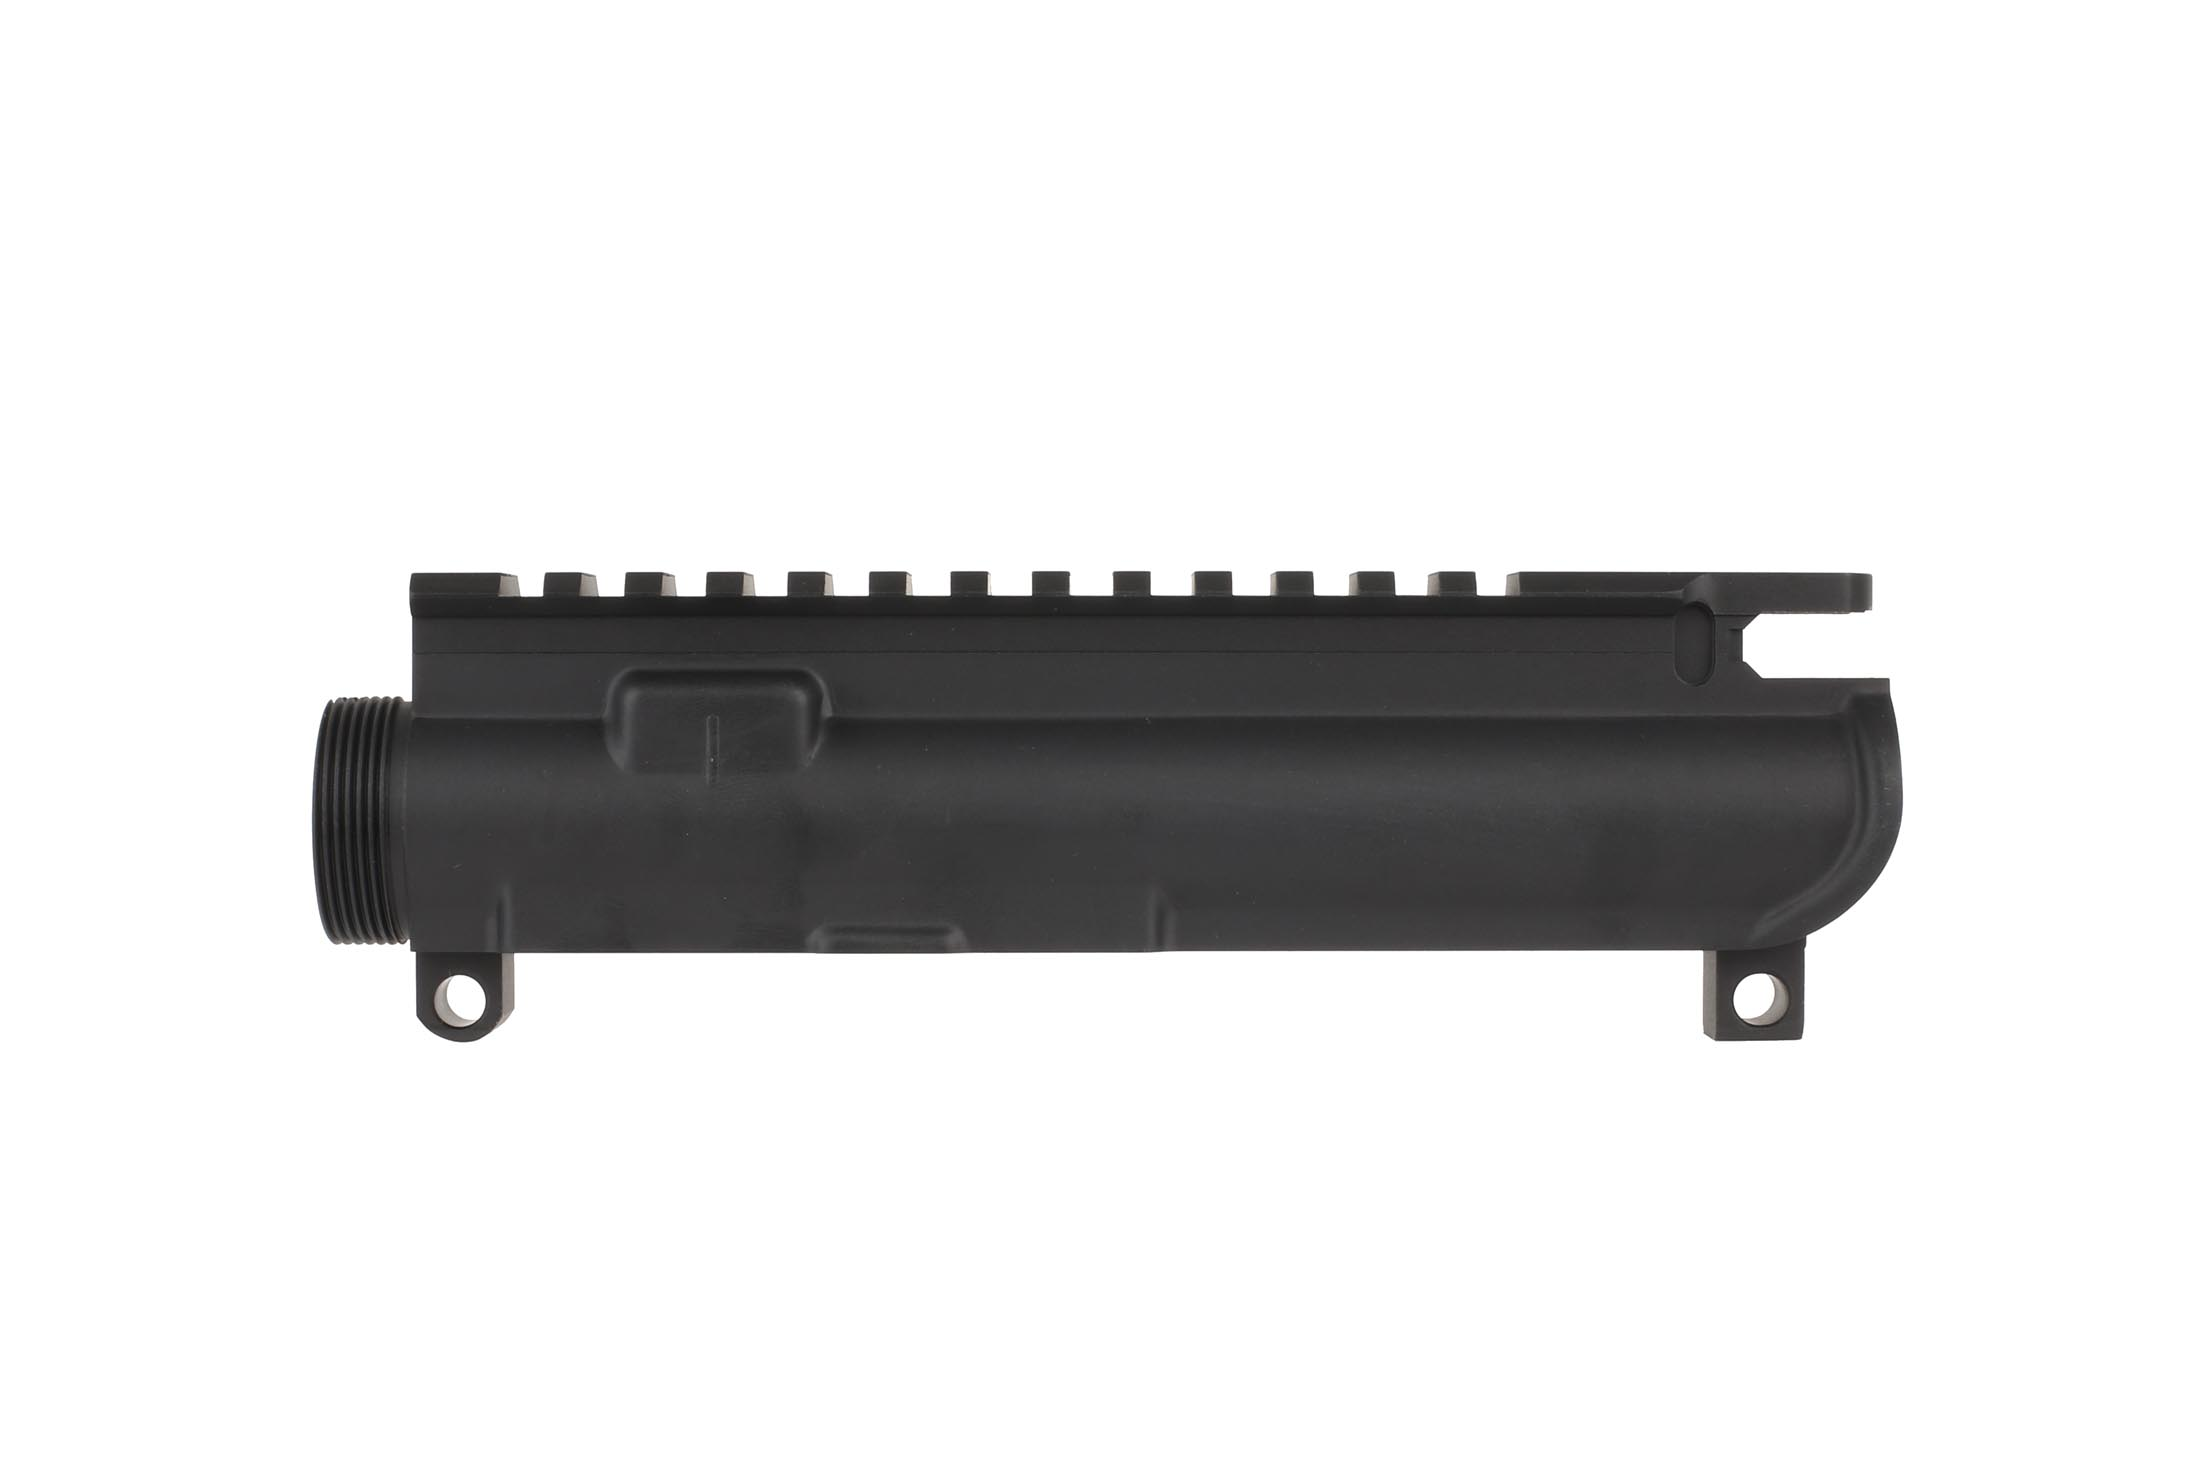 KAK Industry AR-15 Forged Stripped Upper Receiver